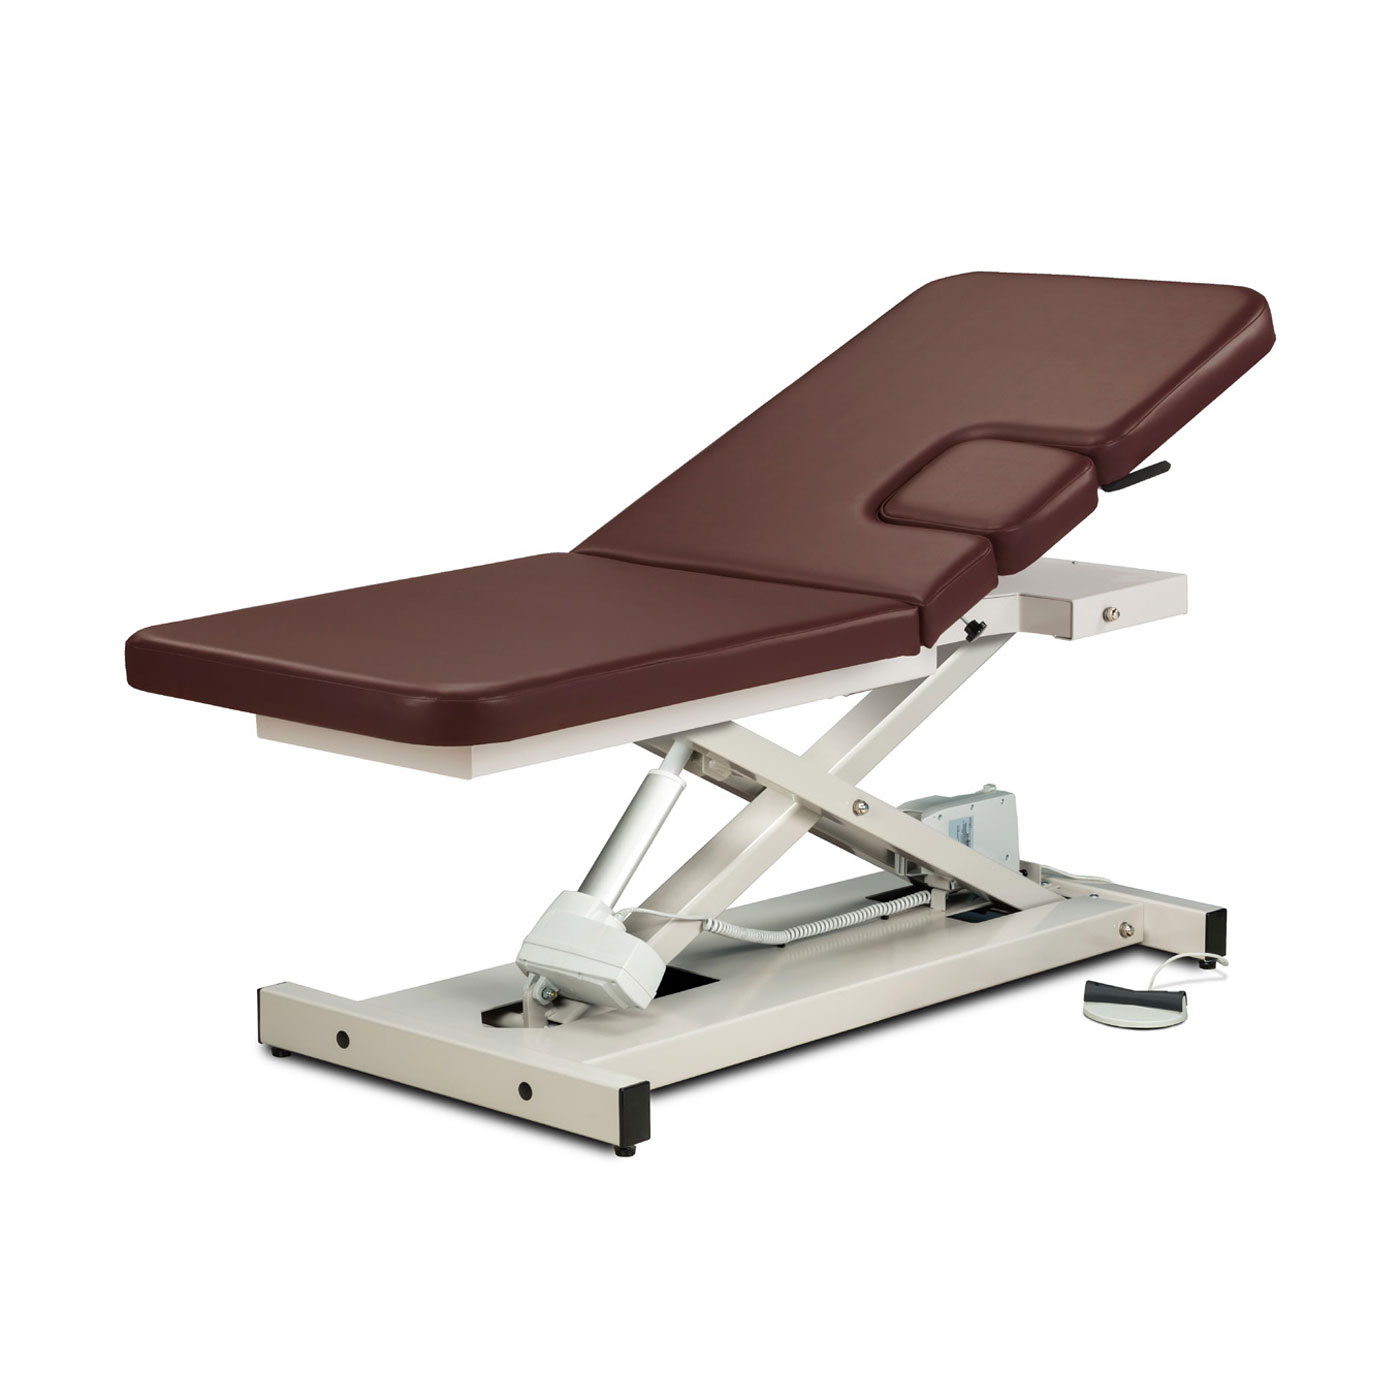 Clinton open base, power imaging table with window drop and adjustable backrest